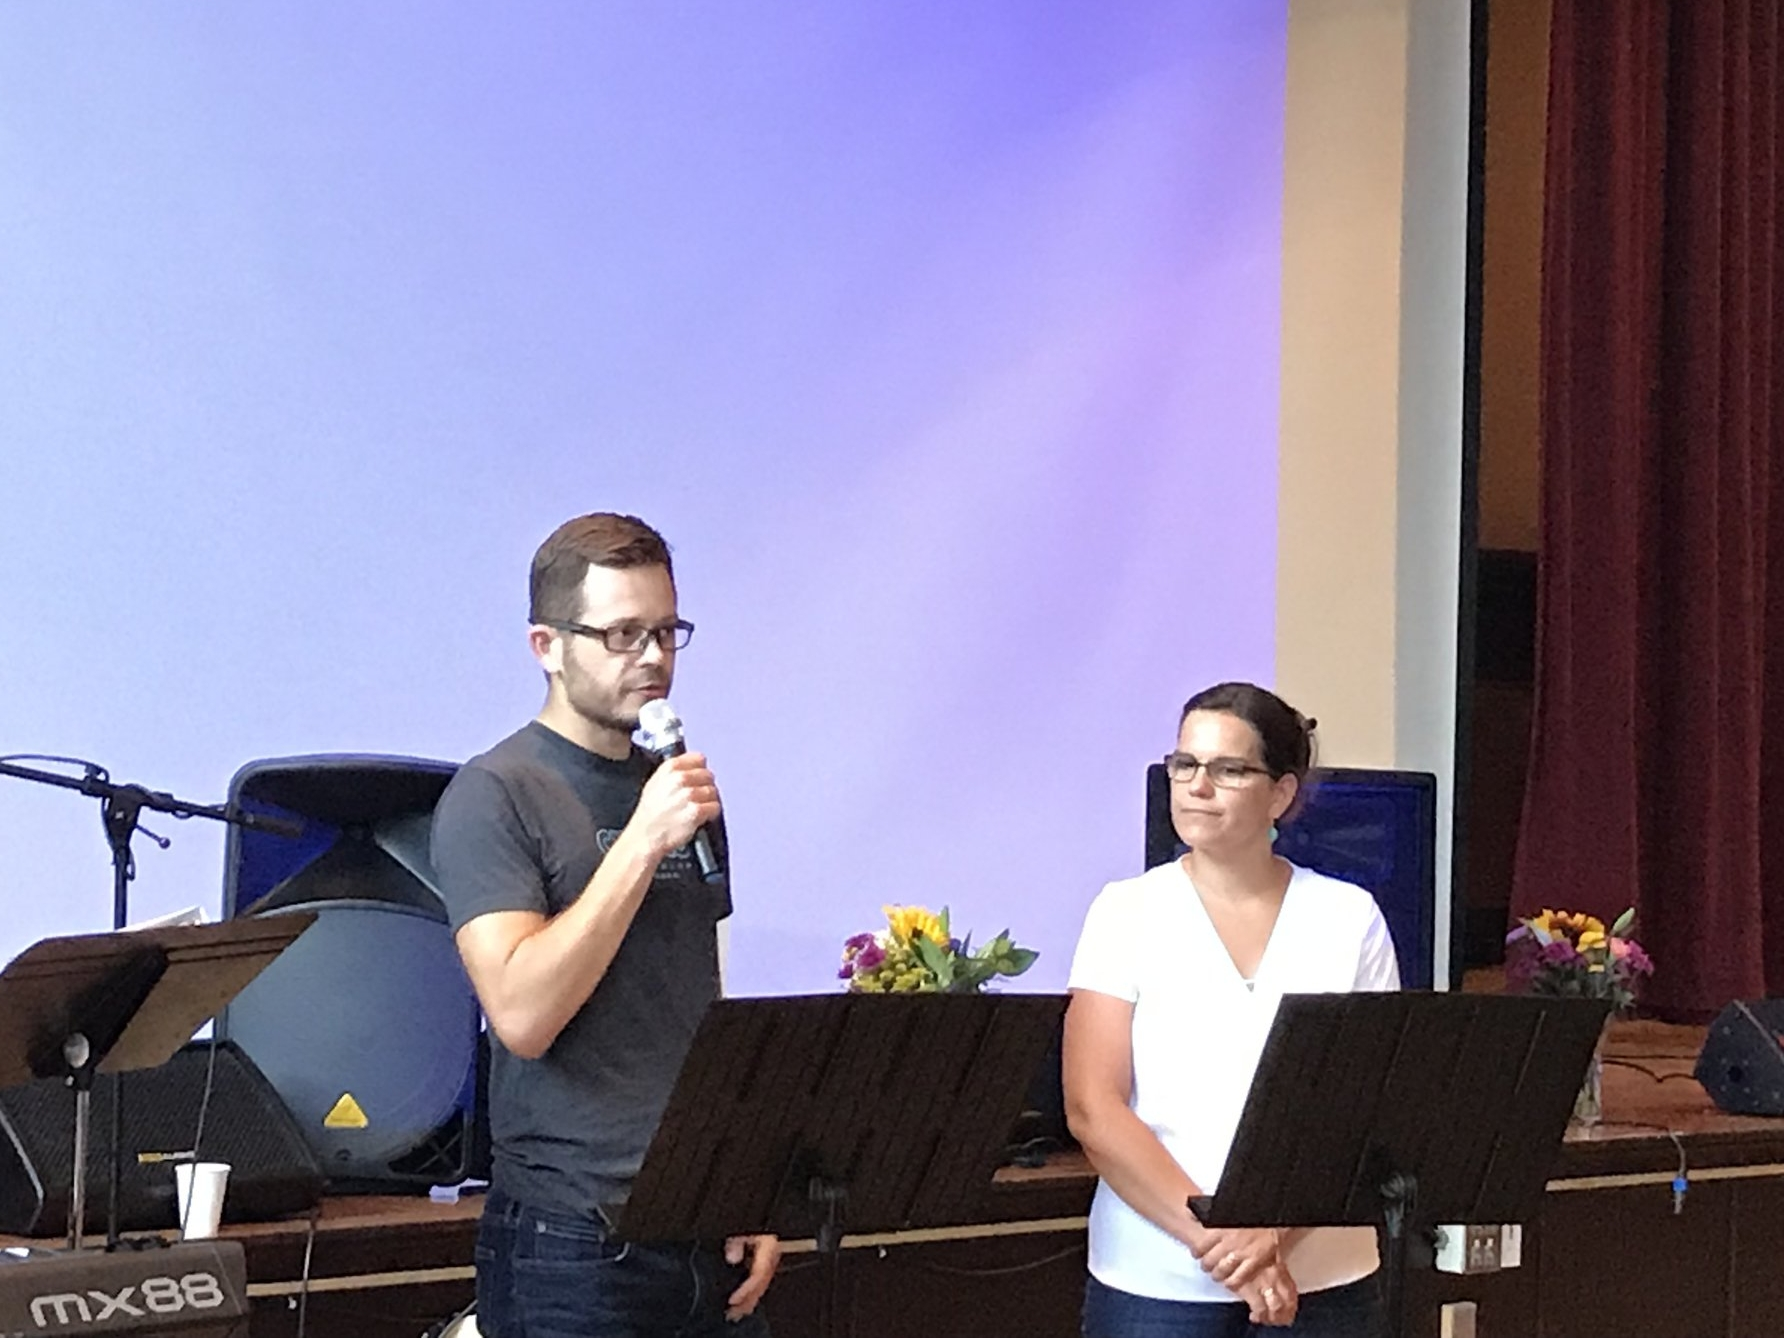 David and Jacqui preaching at transformation city church